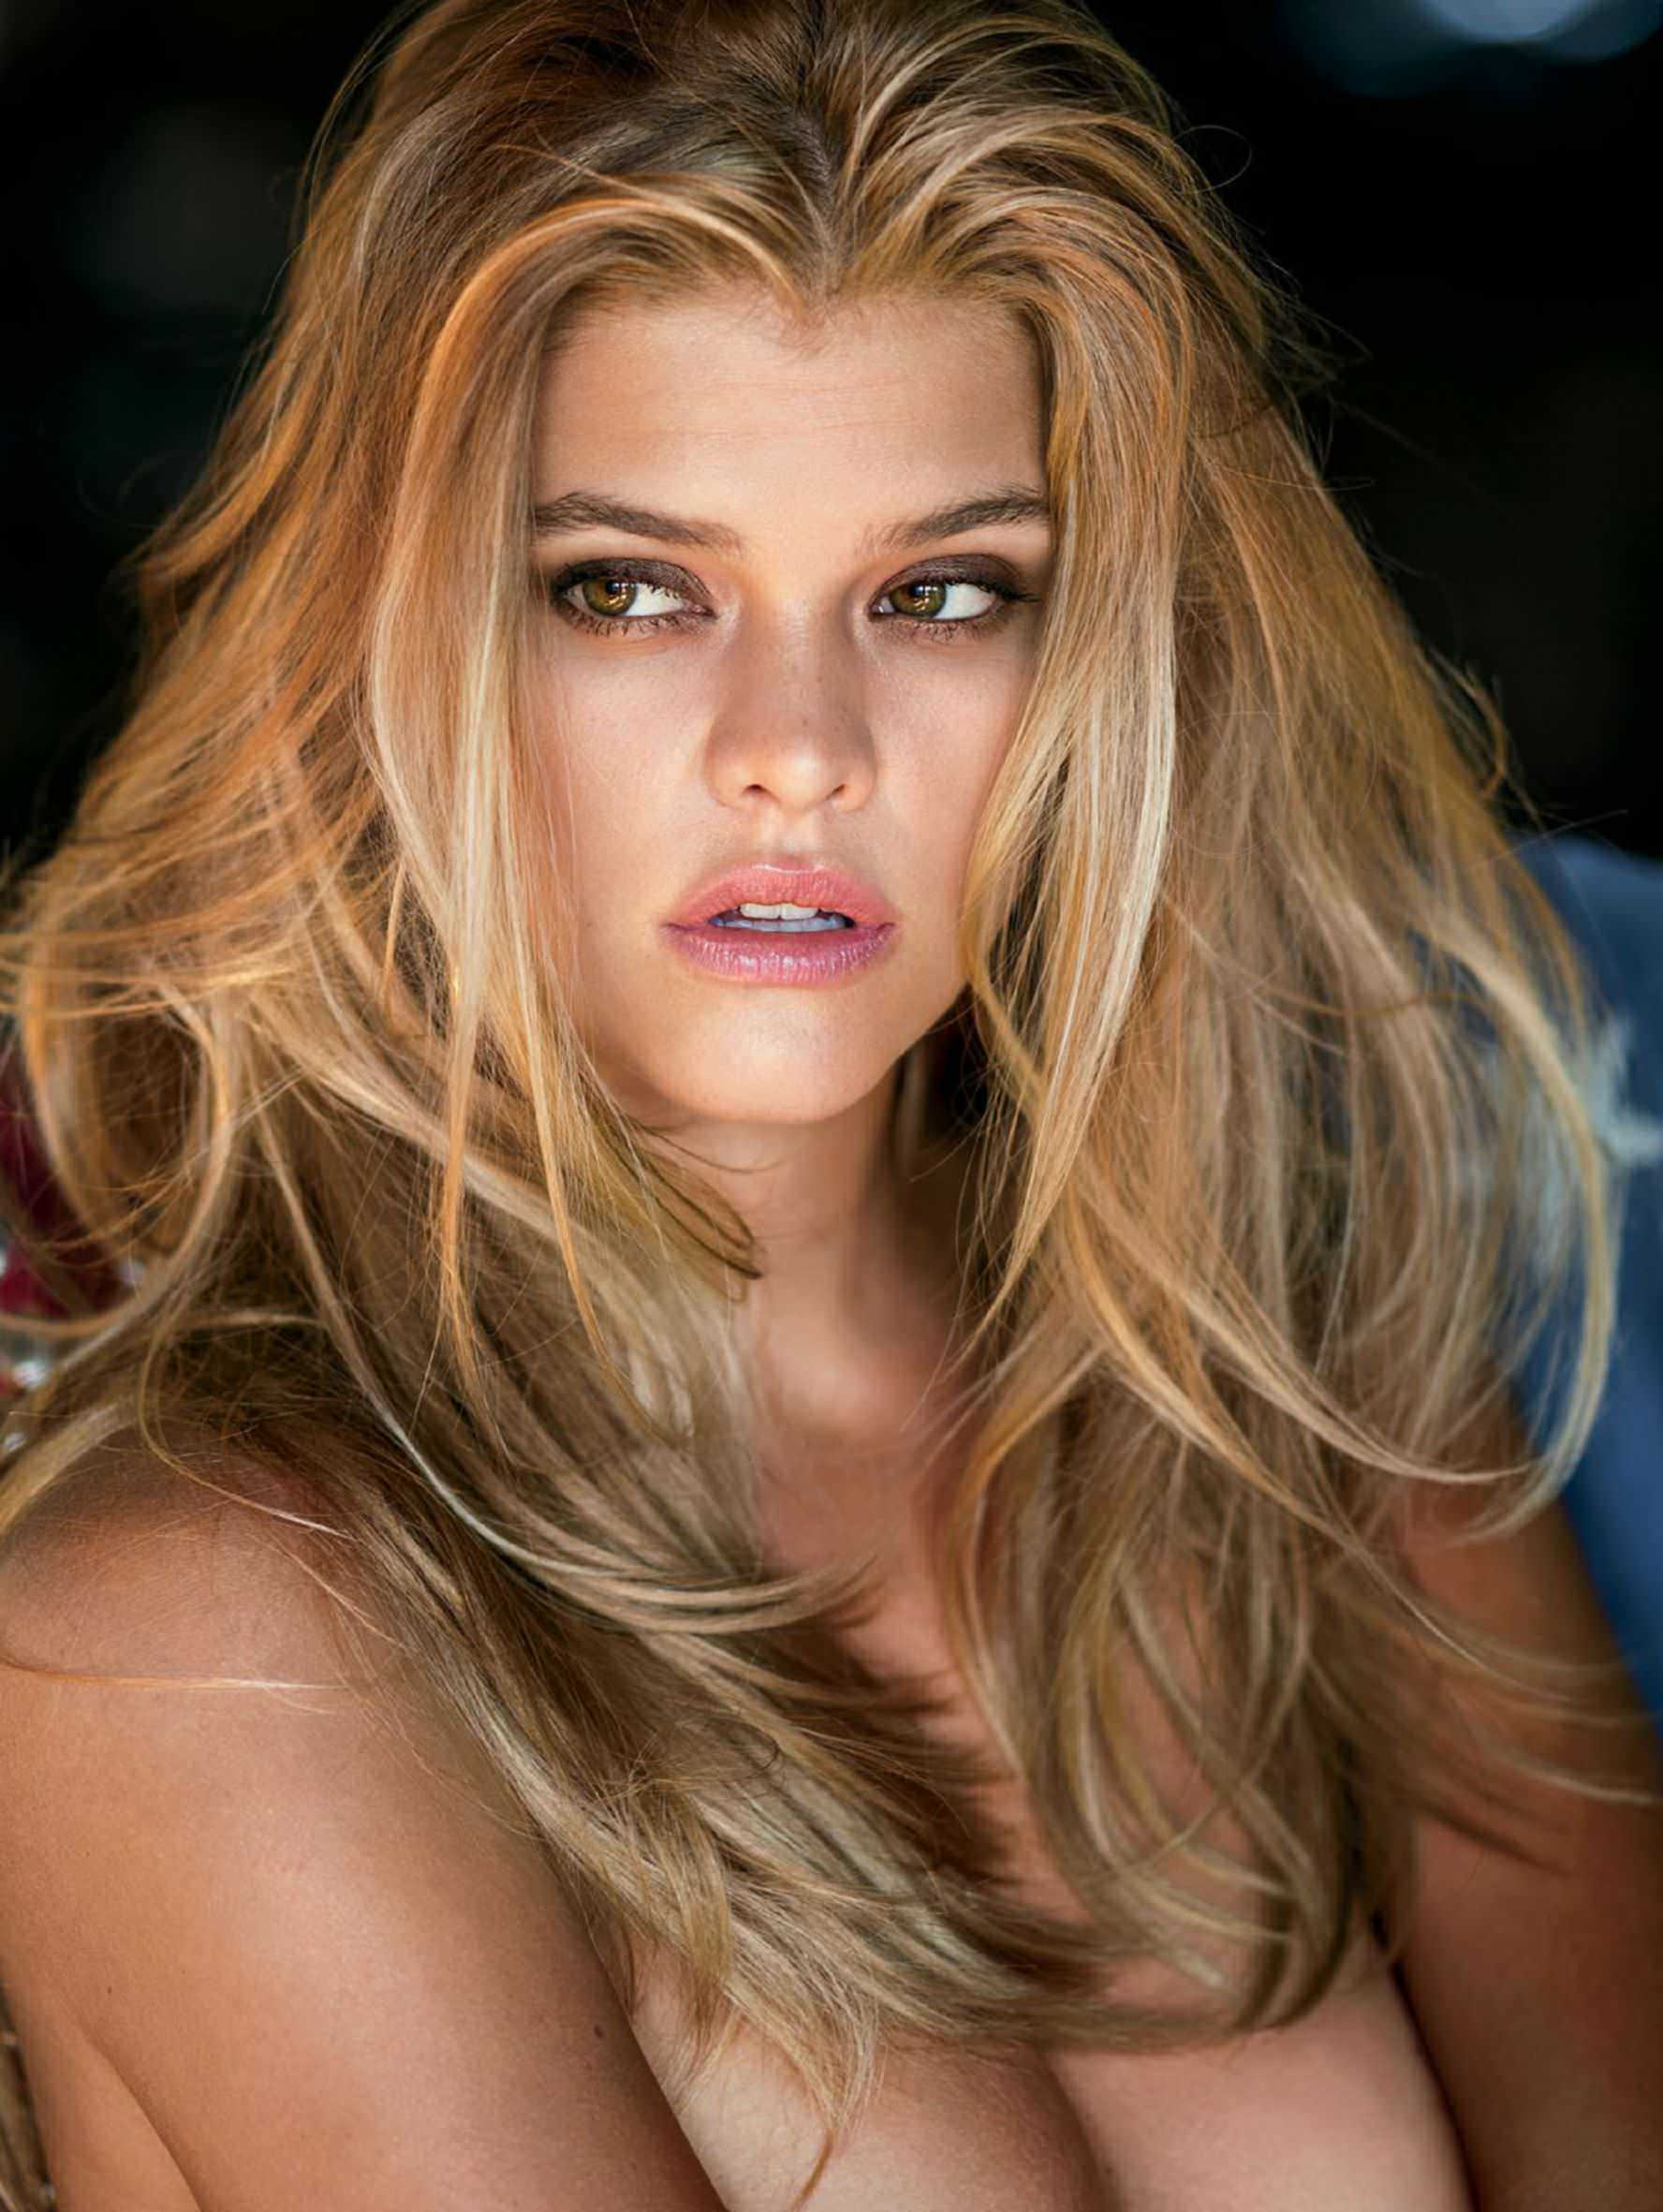 Nina Agdal nudes (16 foto and video), Ass, Leaked, Boobs, underwear 2019